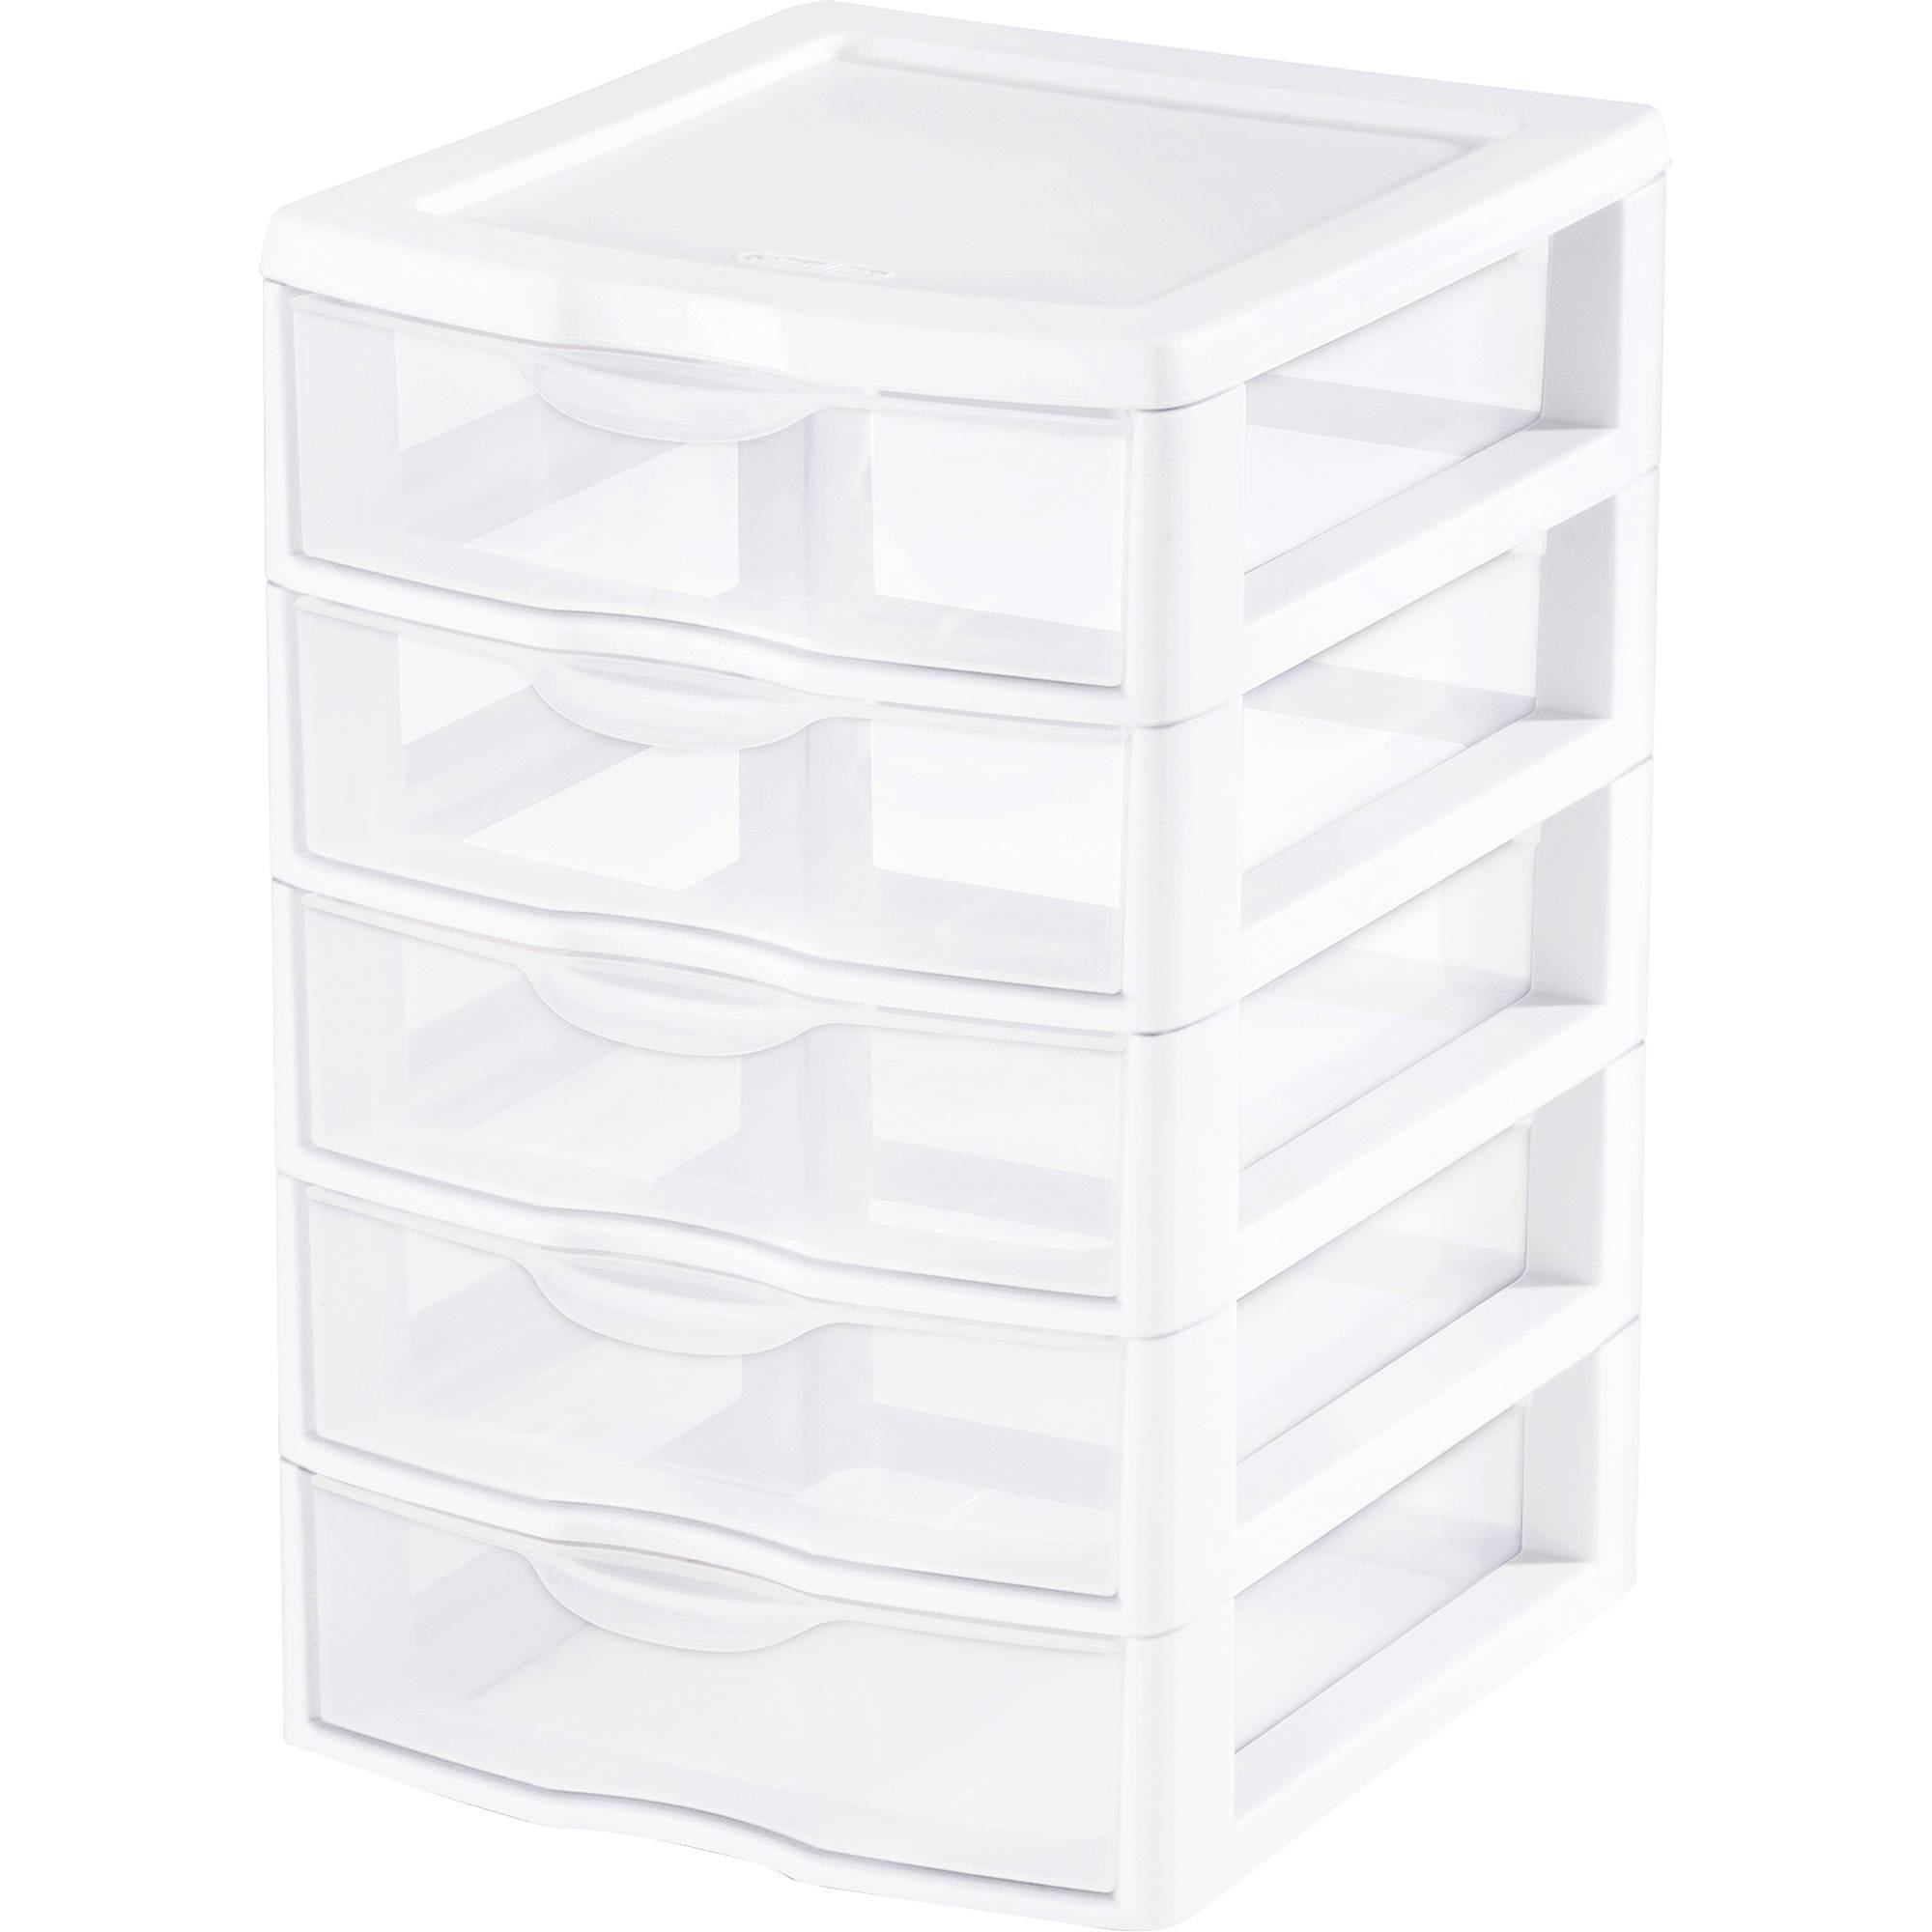 Sterilite Small 5 Drawer Unit- White (Available in Case of 4 or Single Unit)